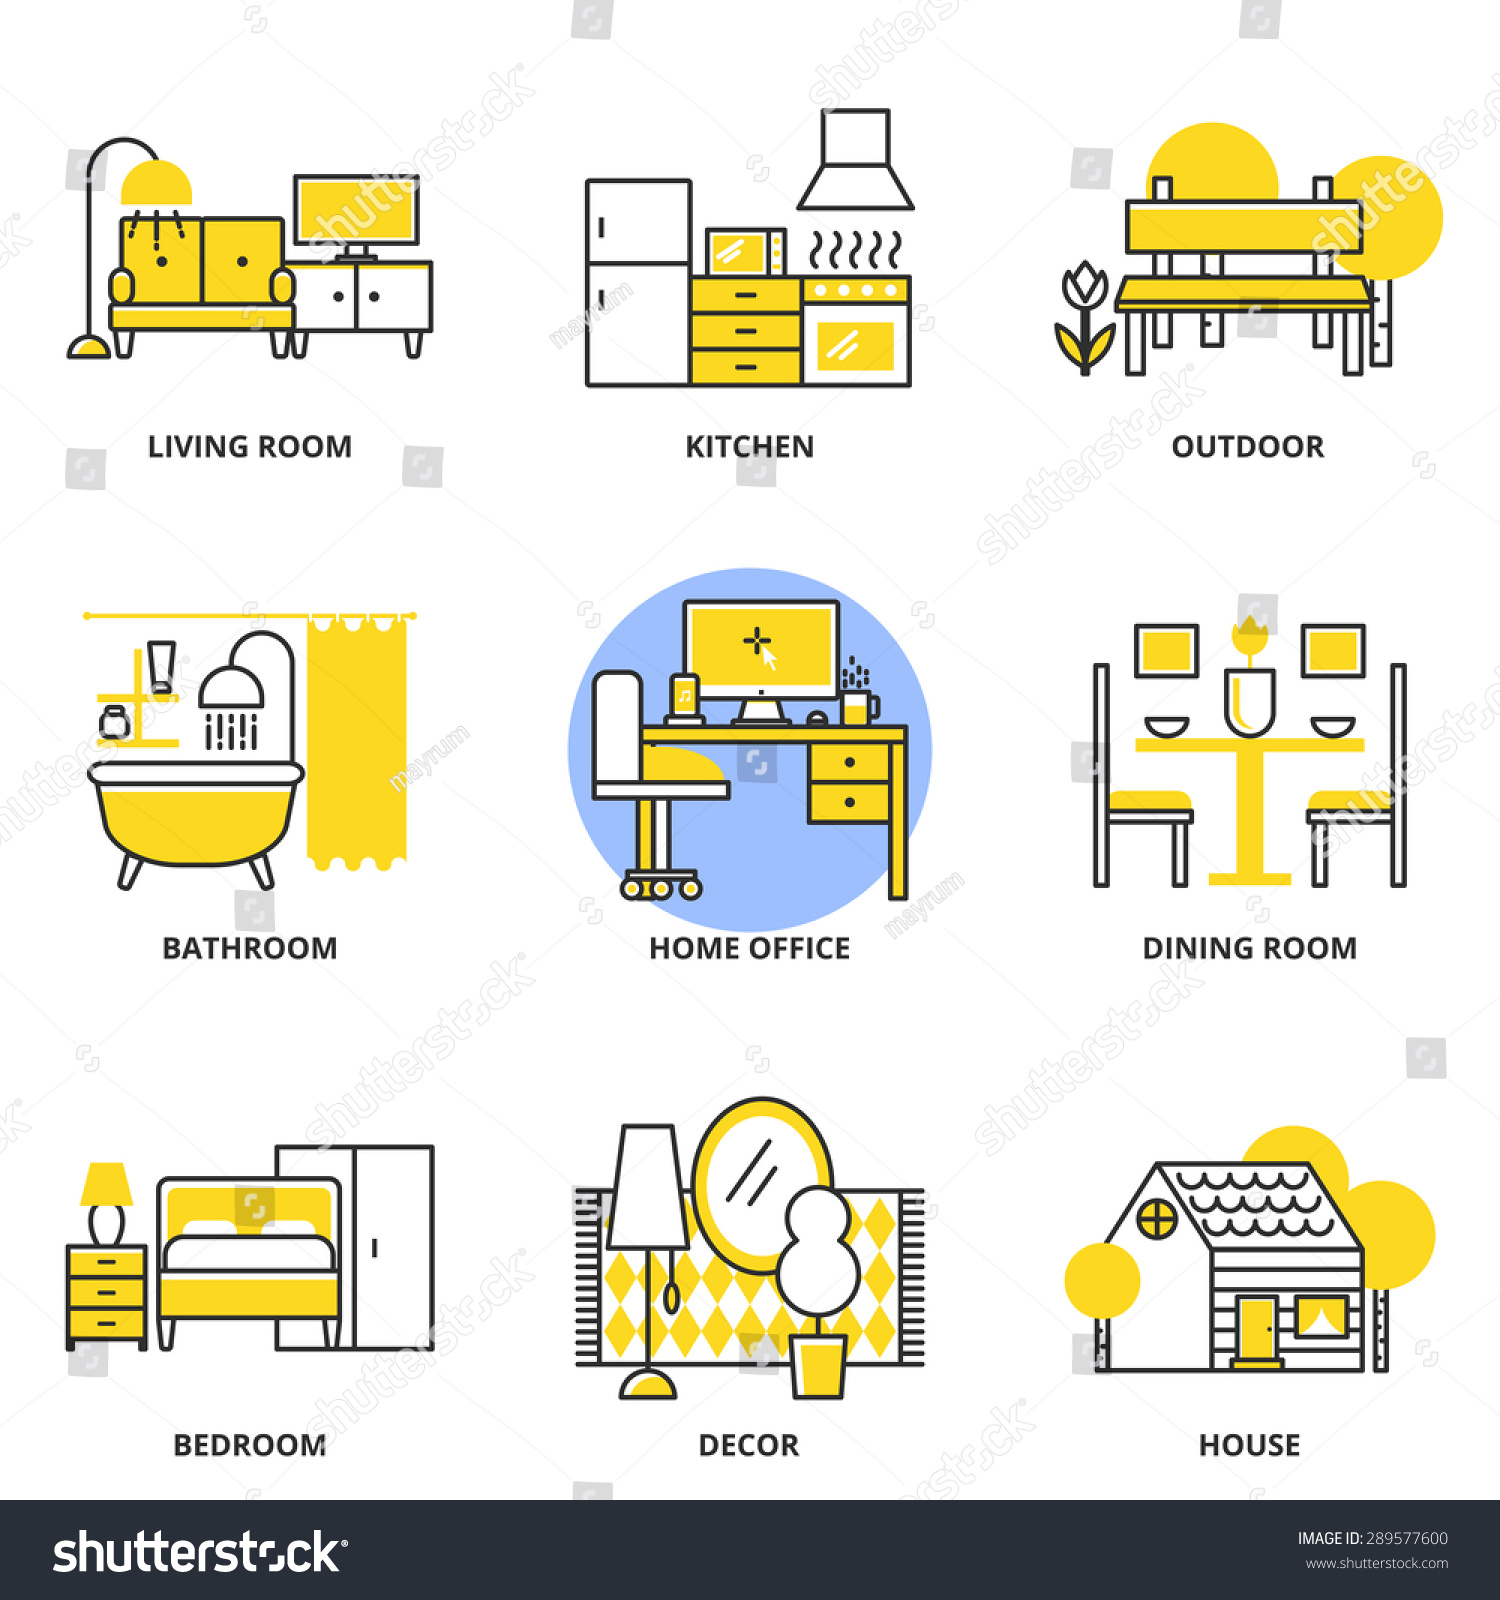 Furniture Vector Icons Set Living Room Stock Vector 289577600 Shutterstock